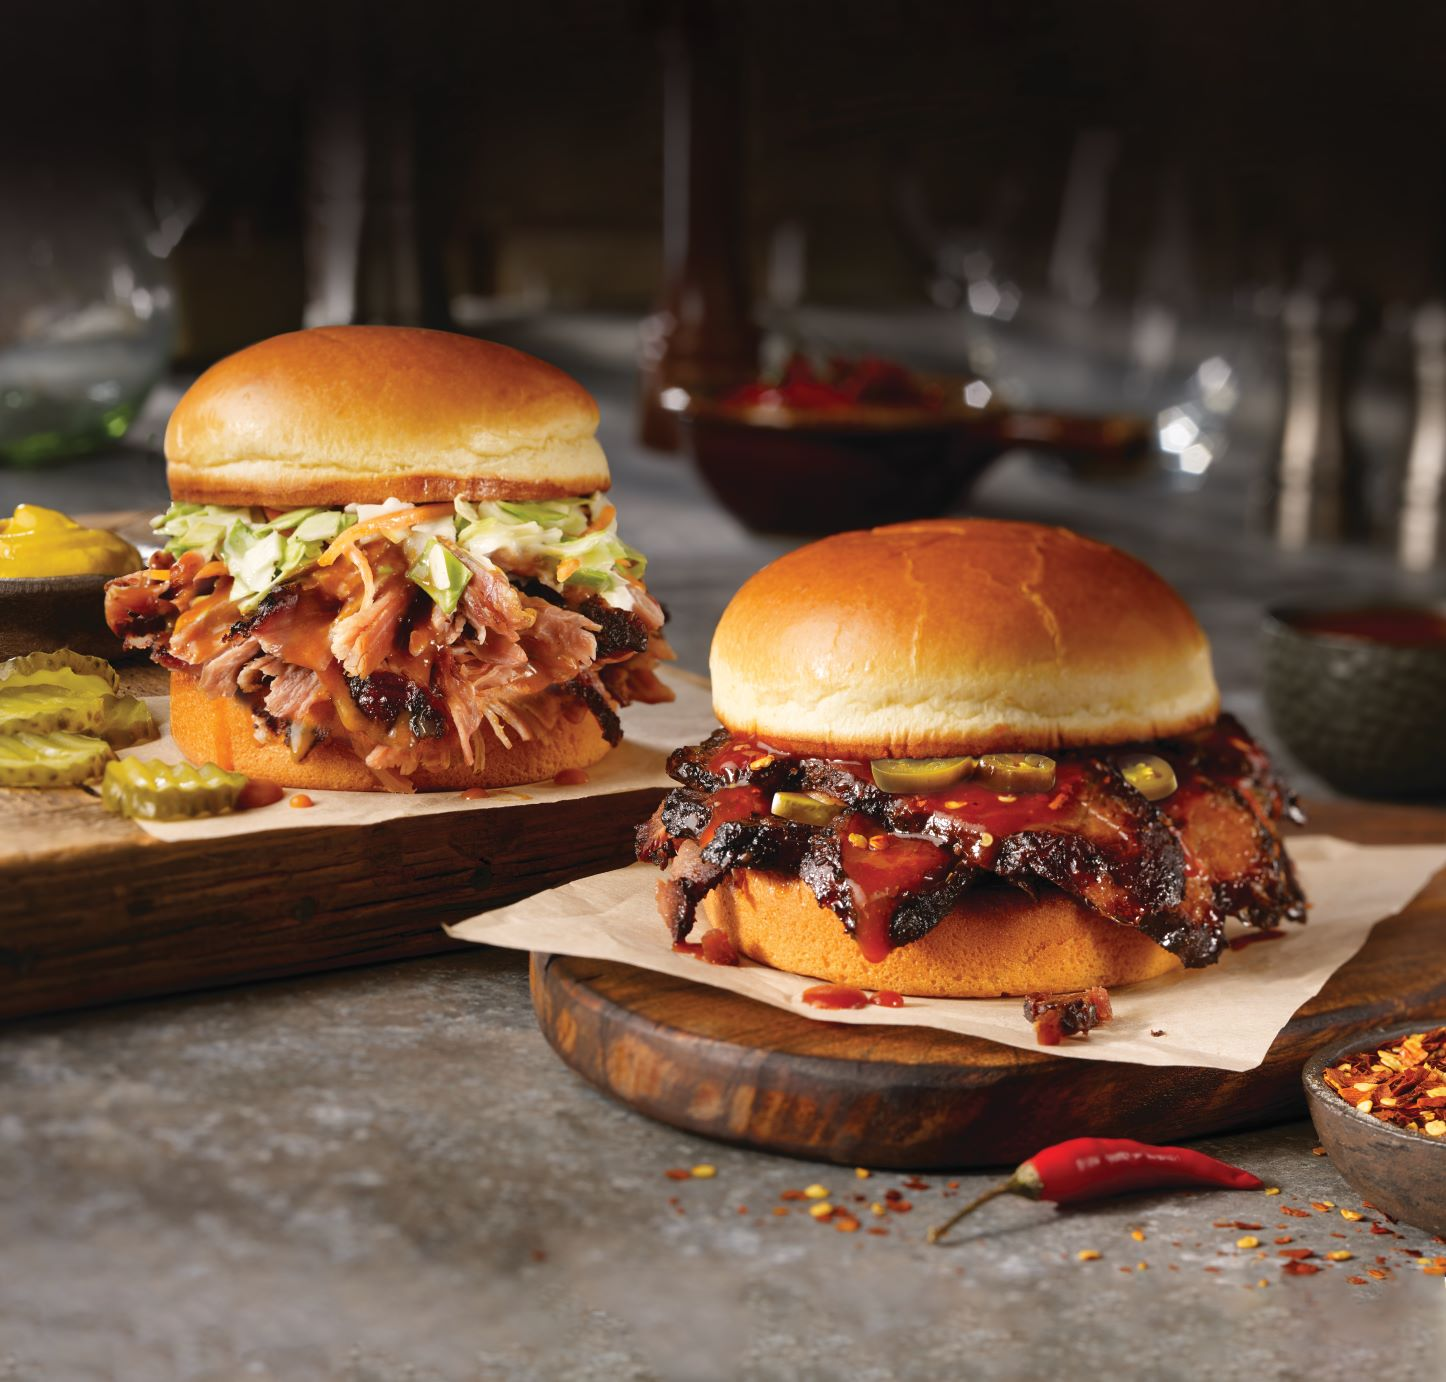 There's No Shortage of Delicious Meats at Dickey's Barbecue Pit